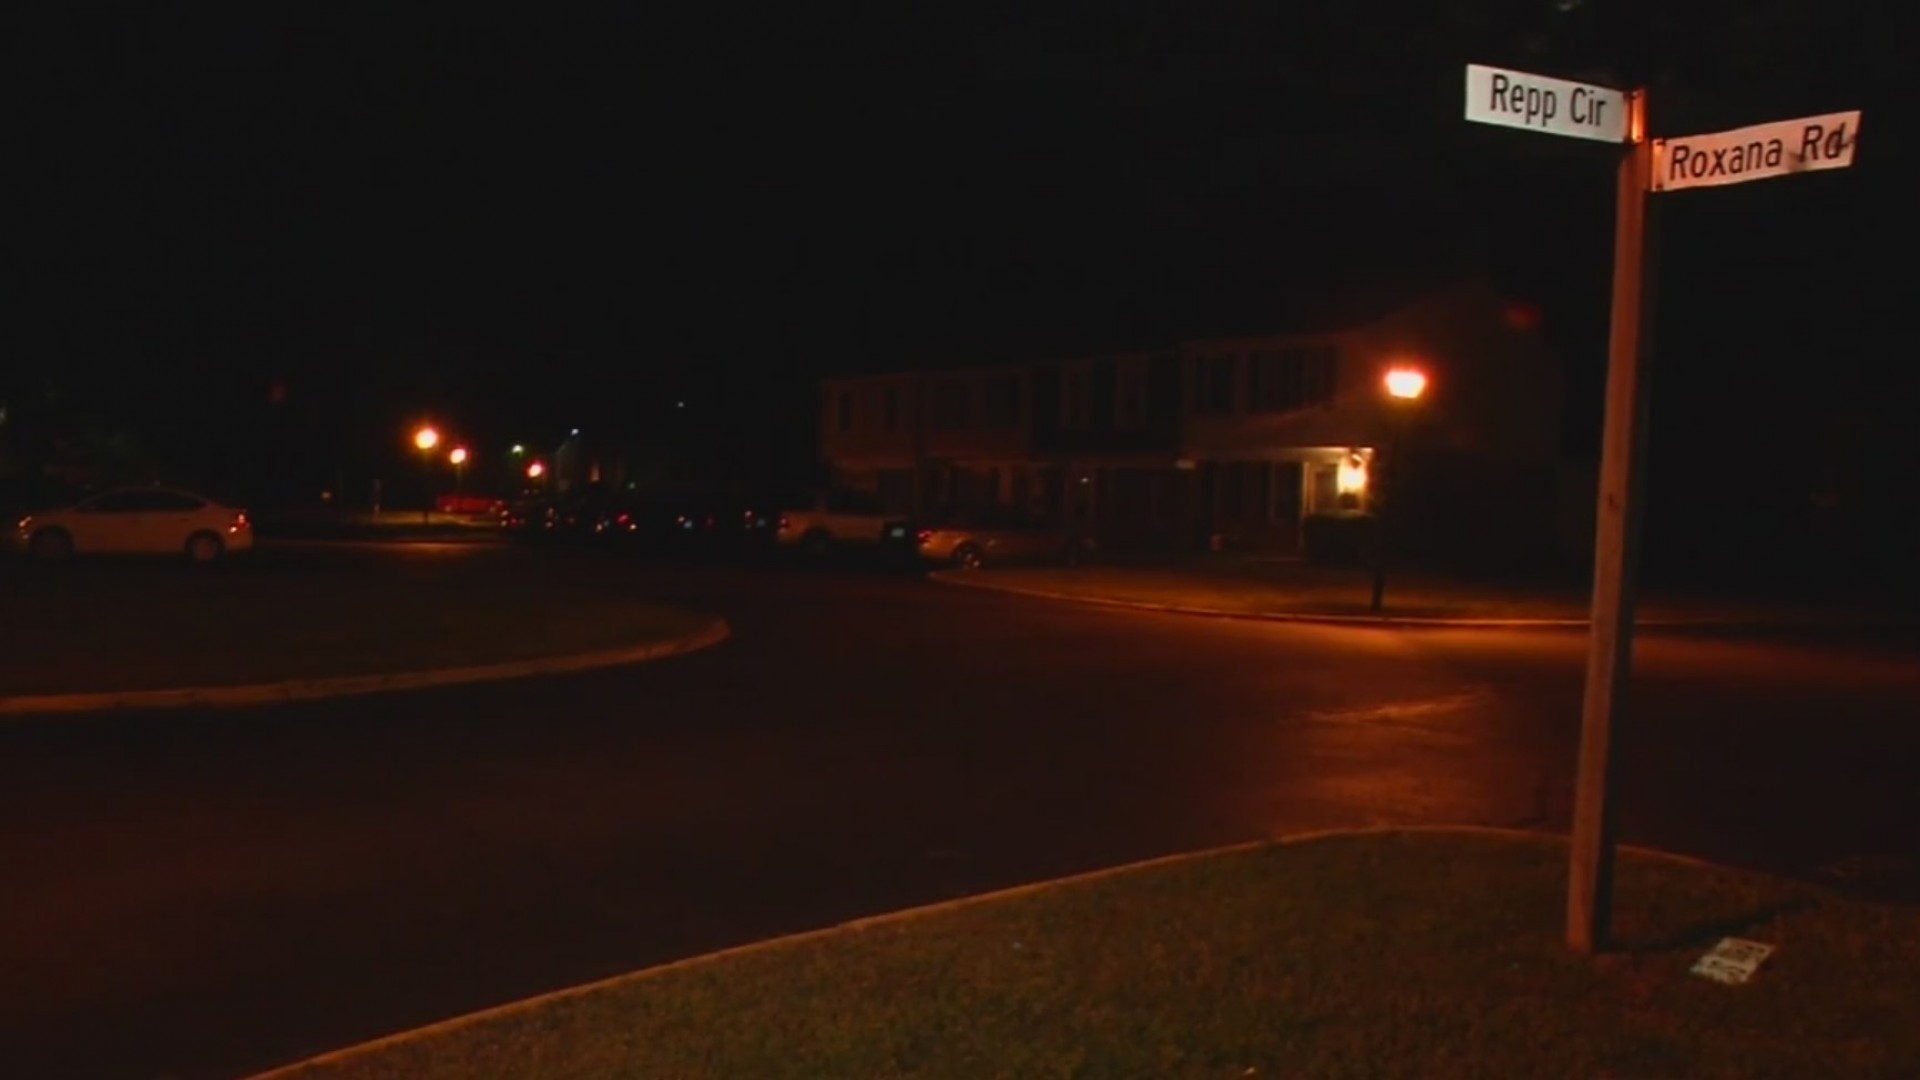 Police detained a juvenile and said they are looking for another suspect in connection with an armed robbery attempt in Henrico County on Tuesday.